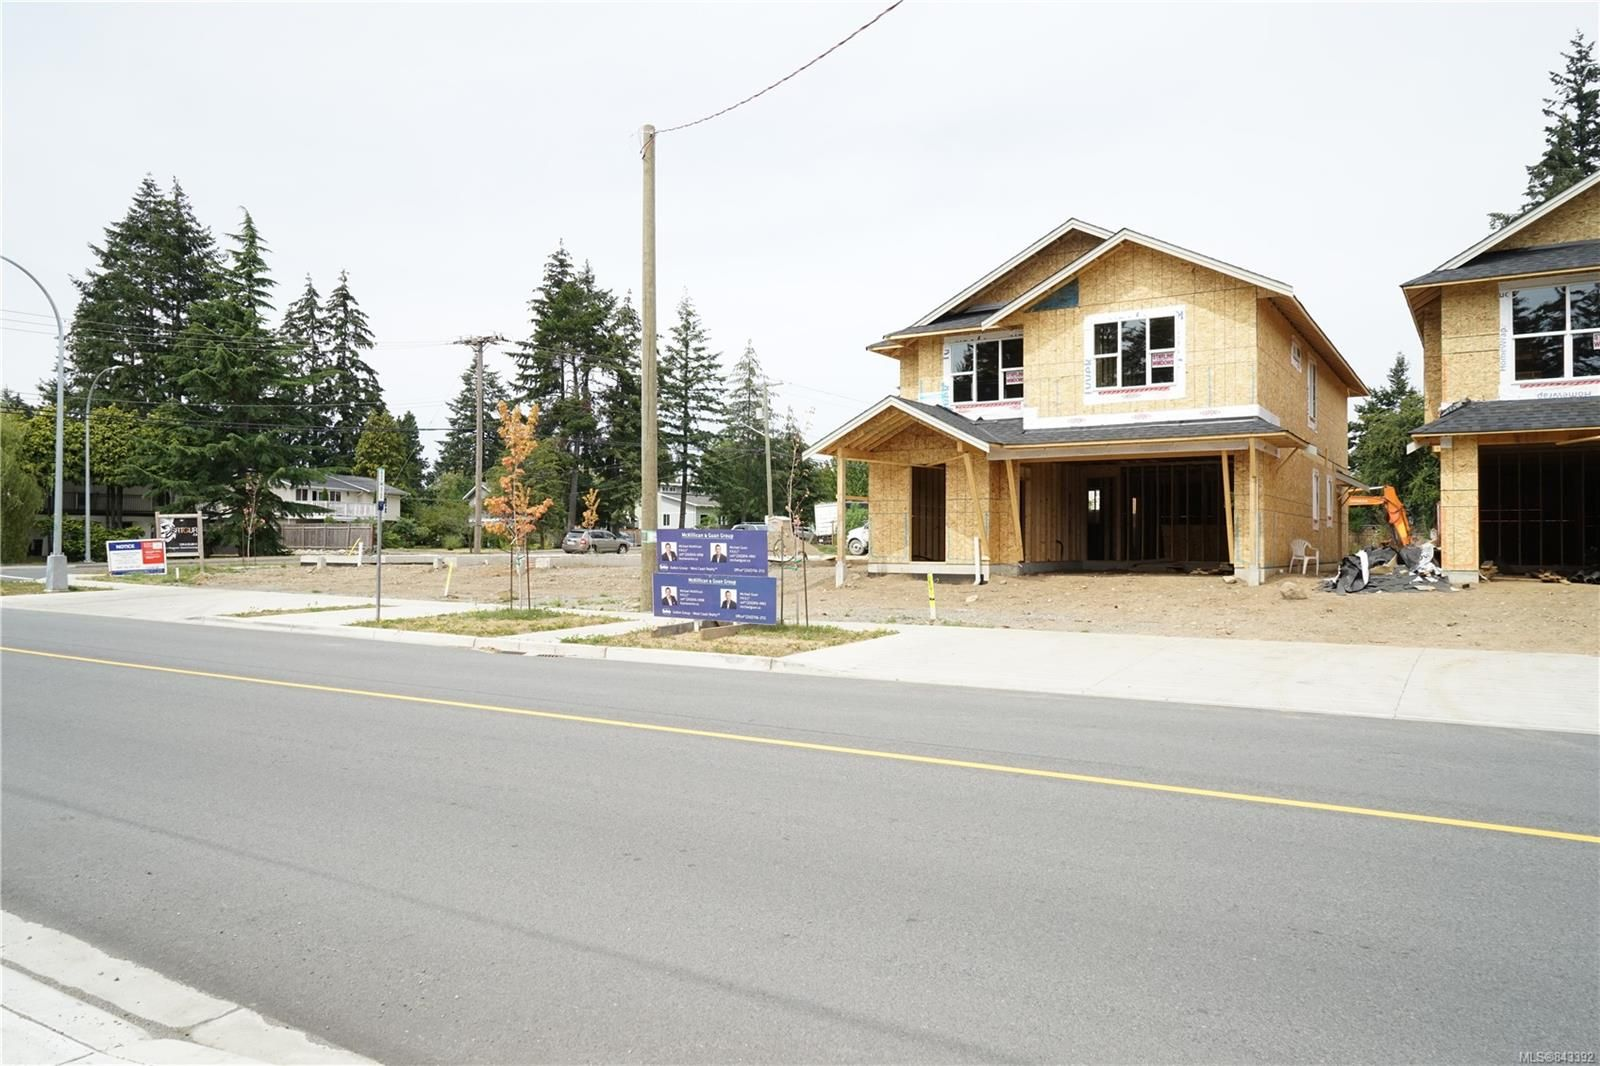 Photo 11: Photos: 2584 Rosstown Rd in NANAIMO: Na Diver Lake House for sale (Nanaimo)  : MLS®# 843392